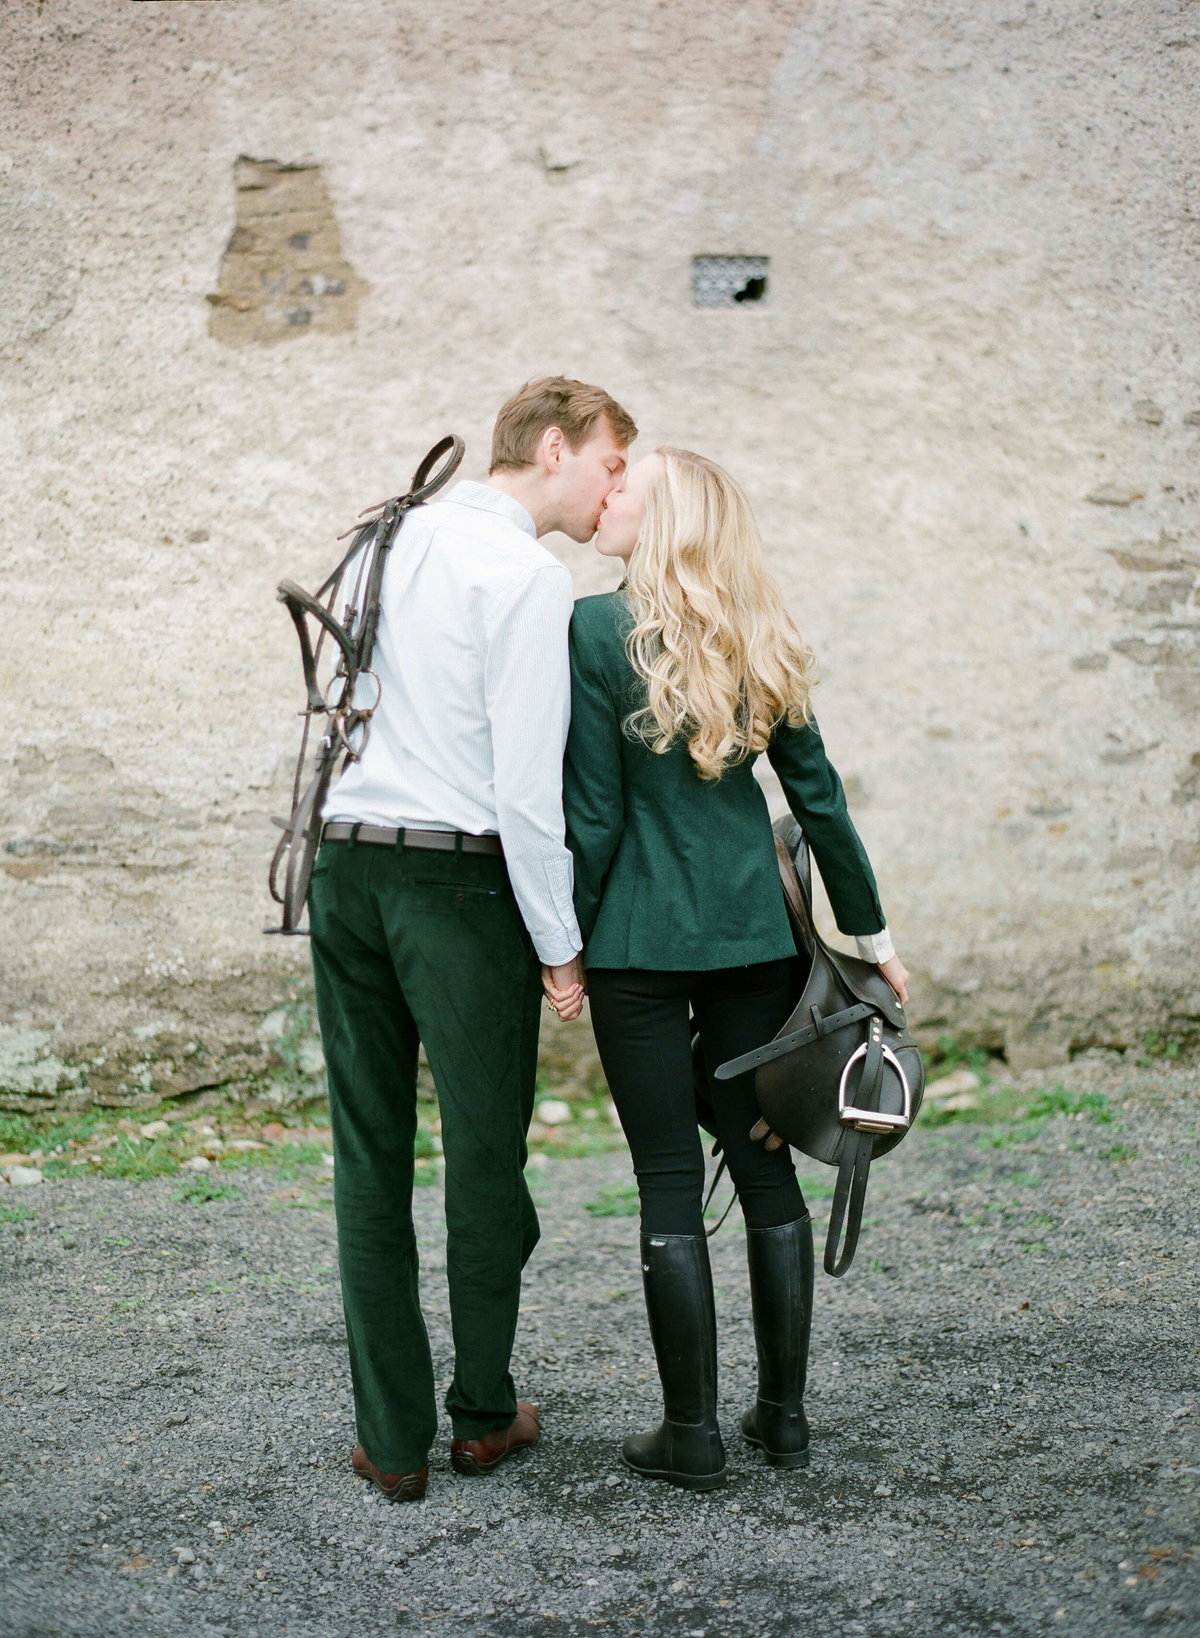 7-KTMerry-destination-weddings-couple-horse-saddle-Ireland